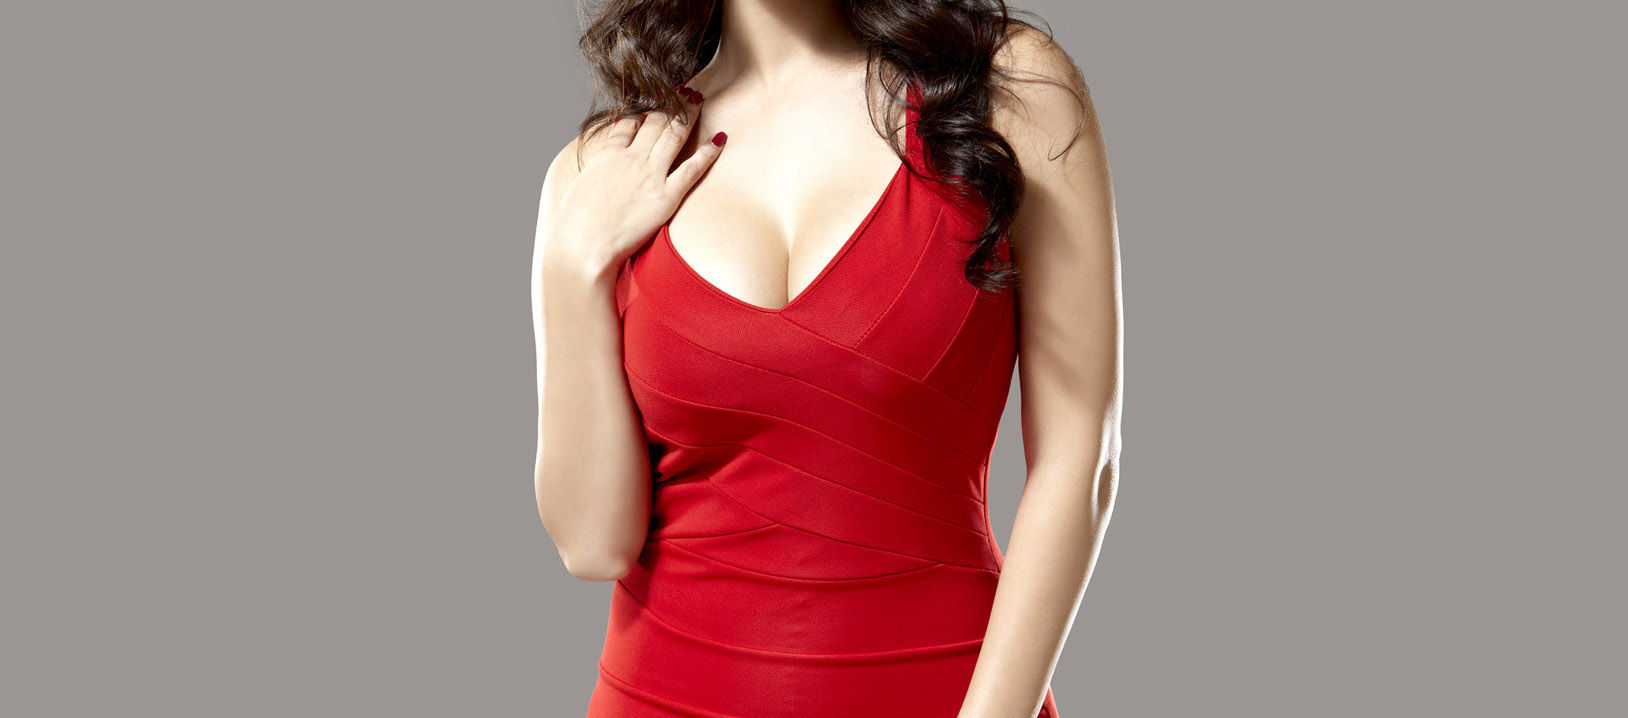 1822999-Sunny-Leone-Wallpapers-HD-free-wallpapers-backgrounds-images-FHD-4k-download-2014-2015-2016